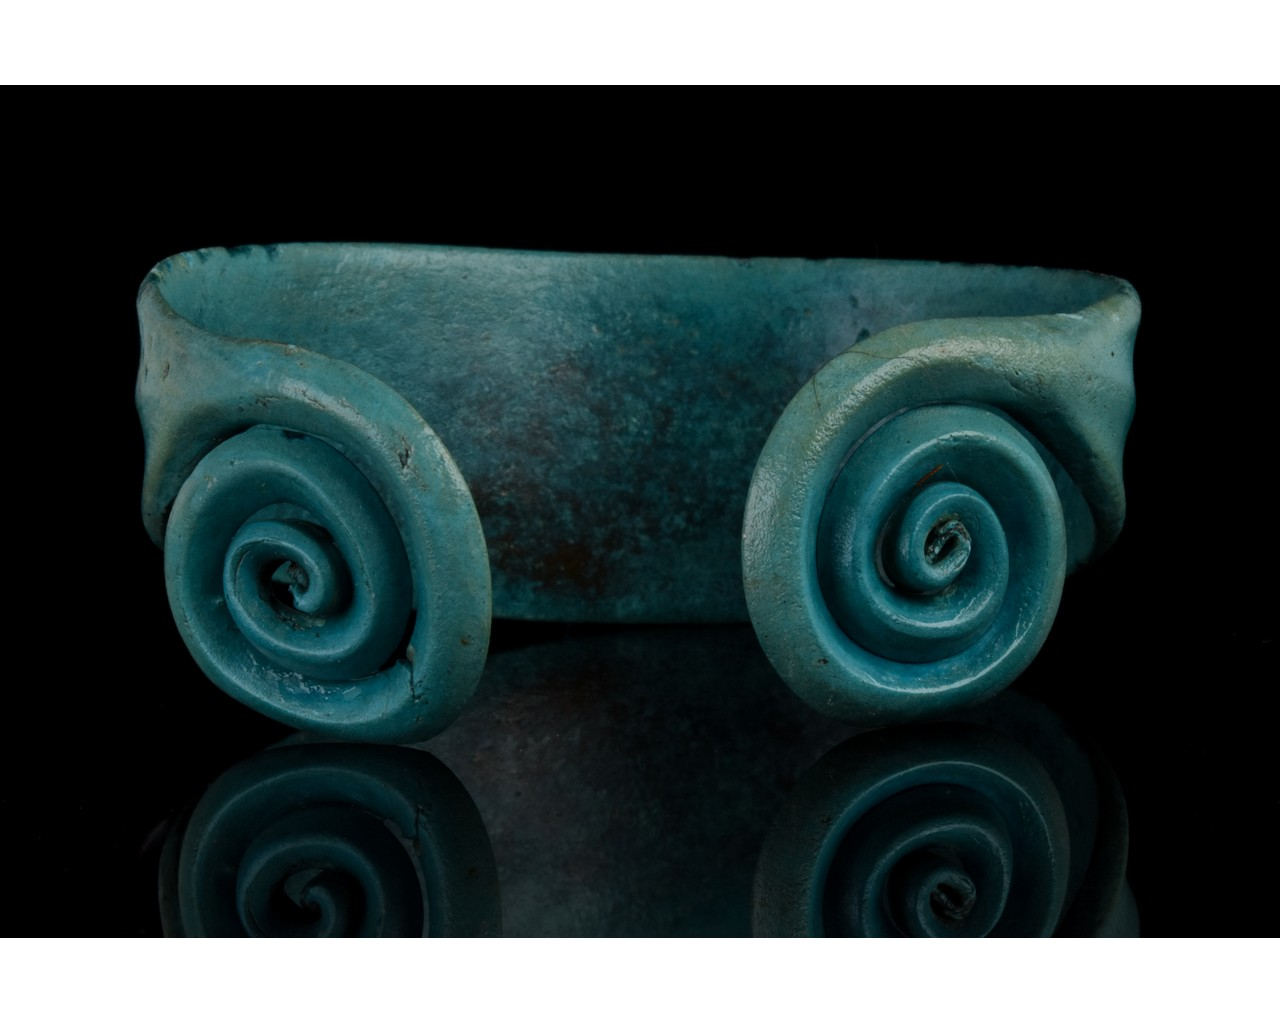 BRONZE AGE COILED BRACELET - Image 4 of 7